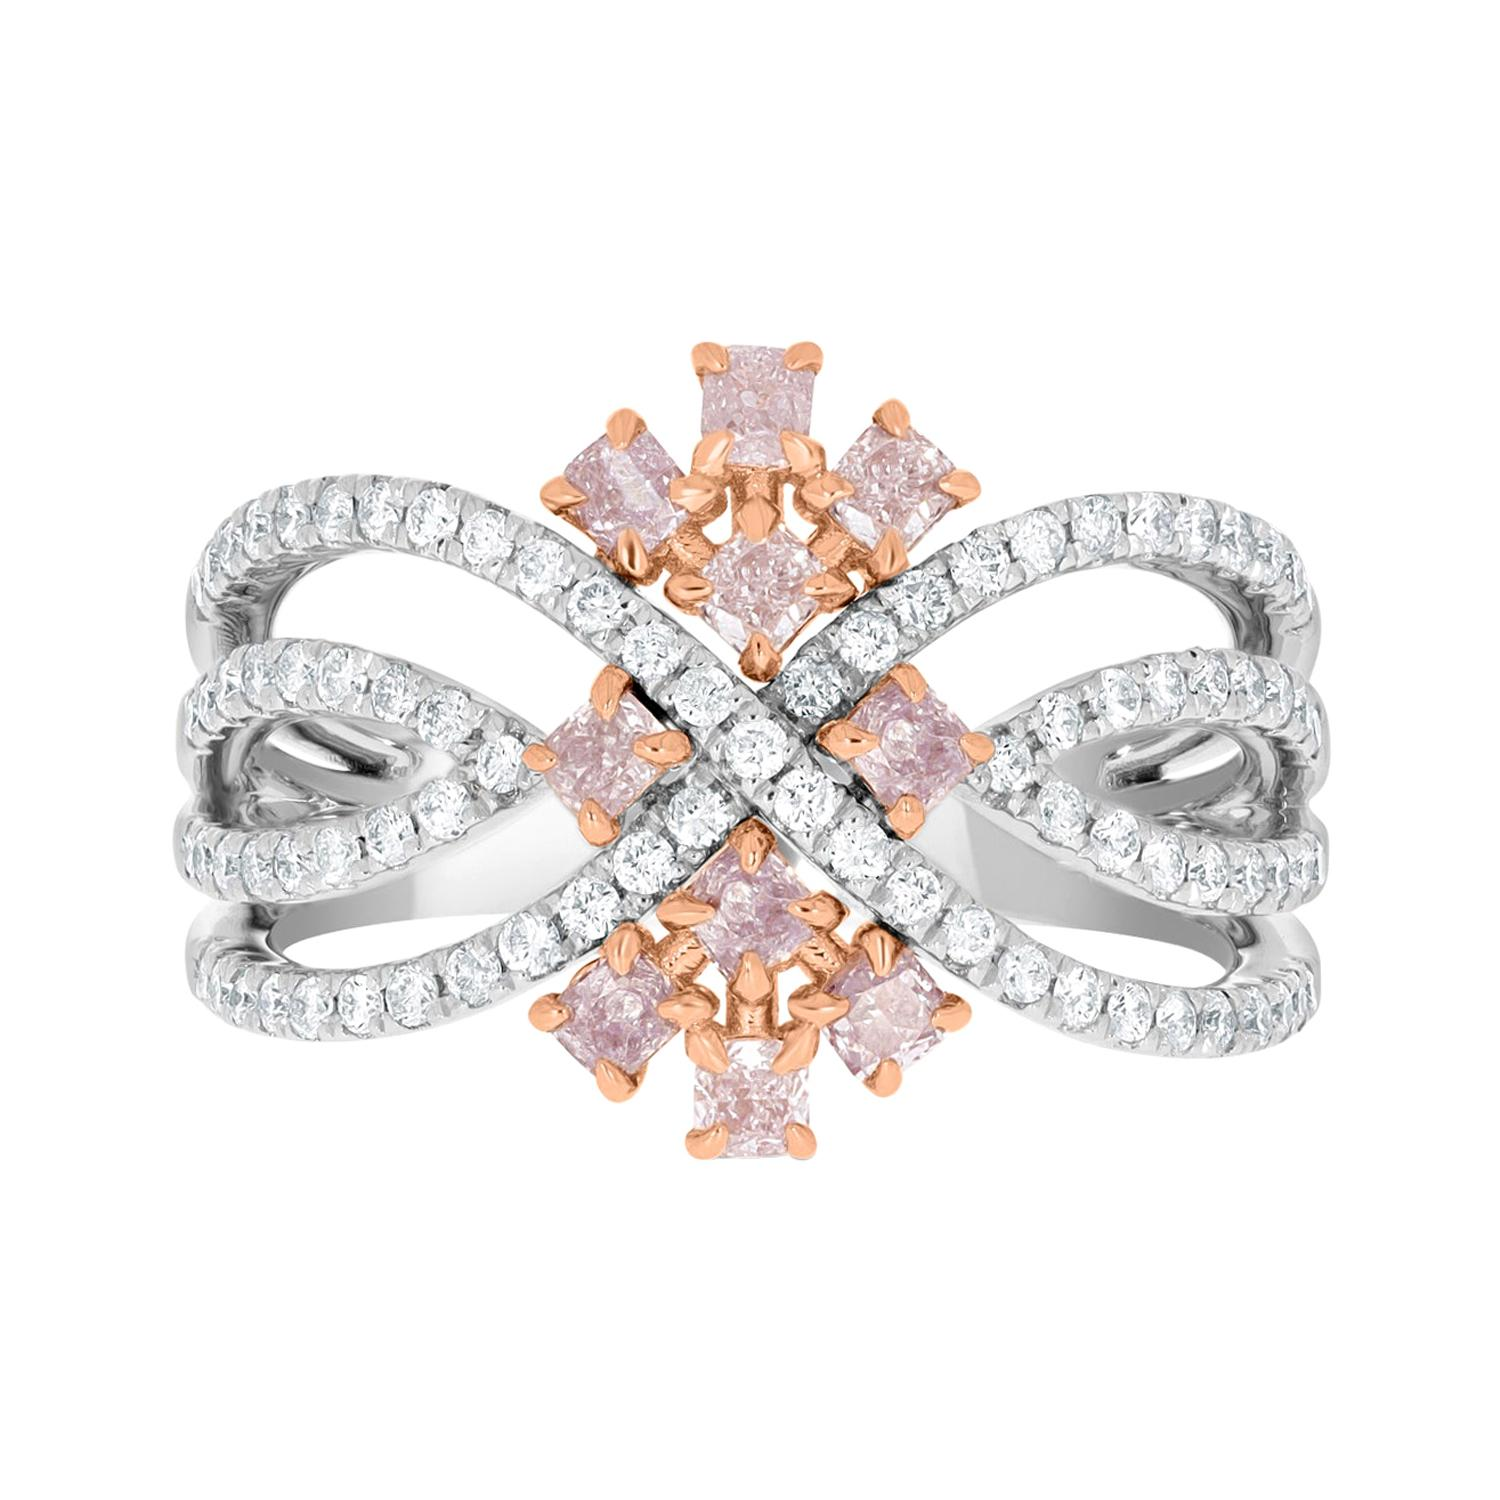 0.57ct Pink Diamond Ring with 0.47tct Diamonds Set in 14K Two Tone Gold